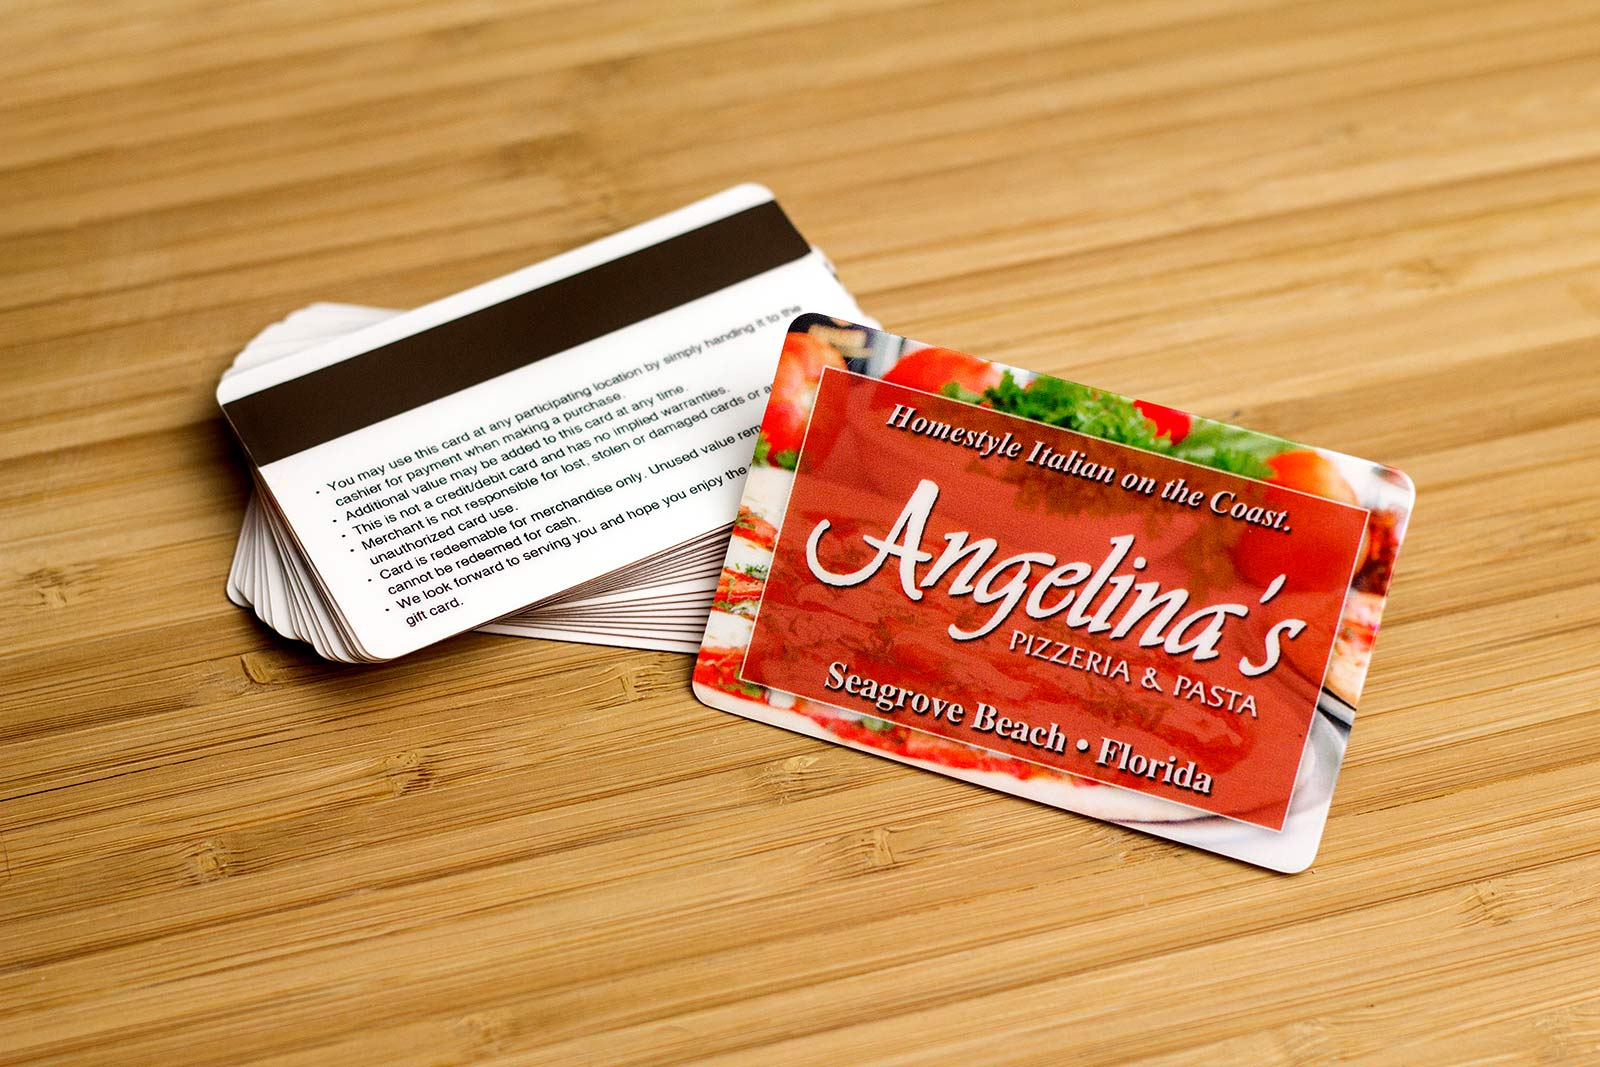 Restaurant gift cards plastic printers not sure how to make it all come together our design experts will work with you to create a custom gift card that you and your customers will love xflitez Images